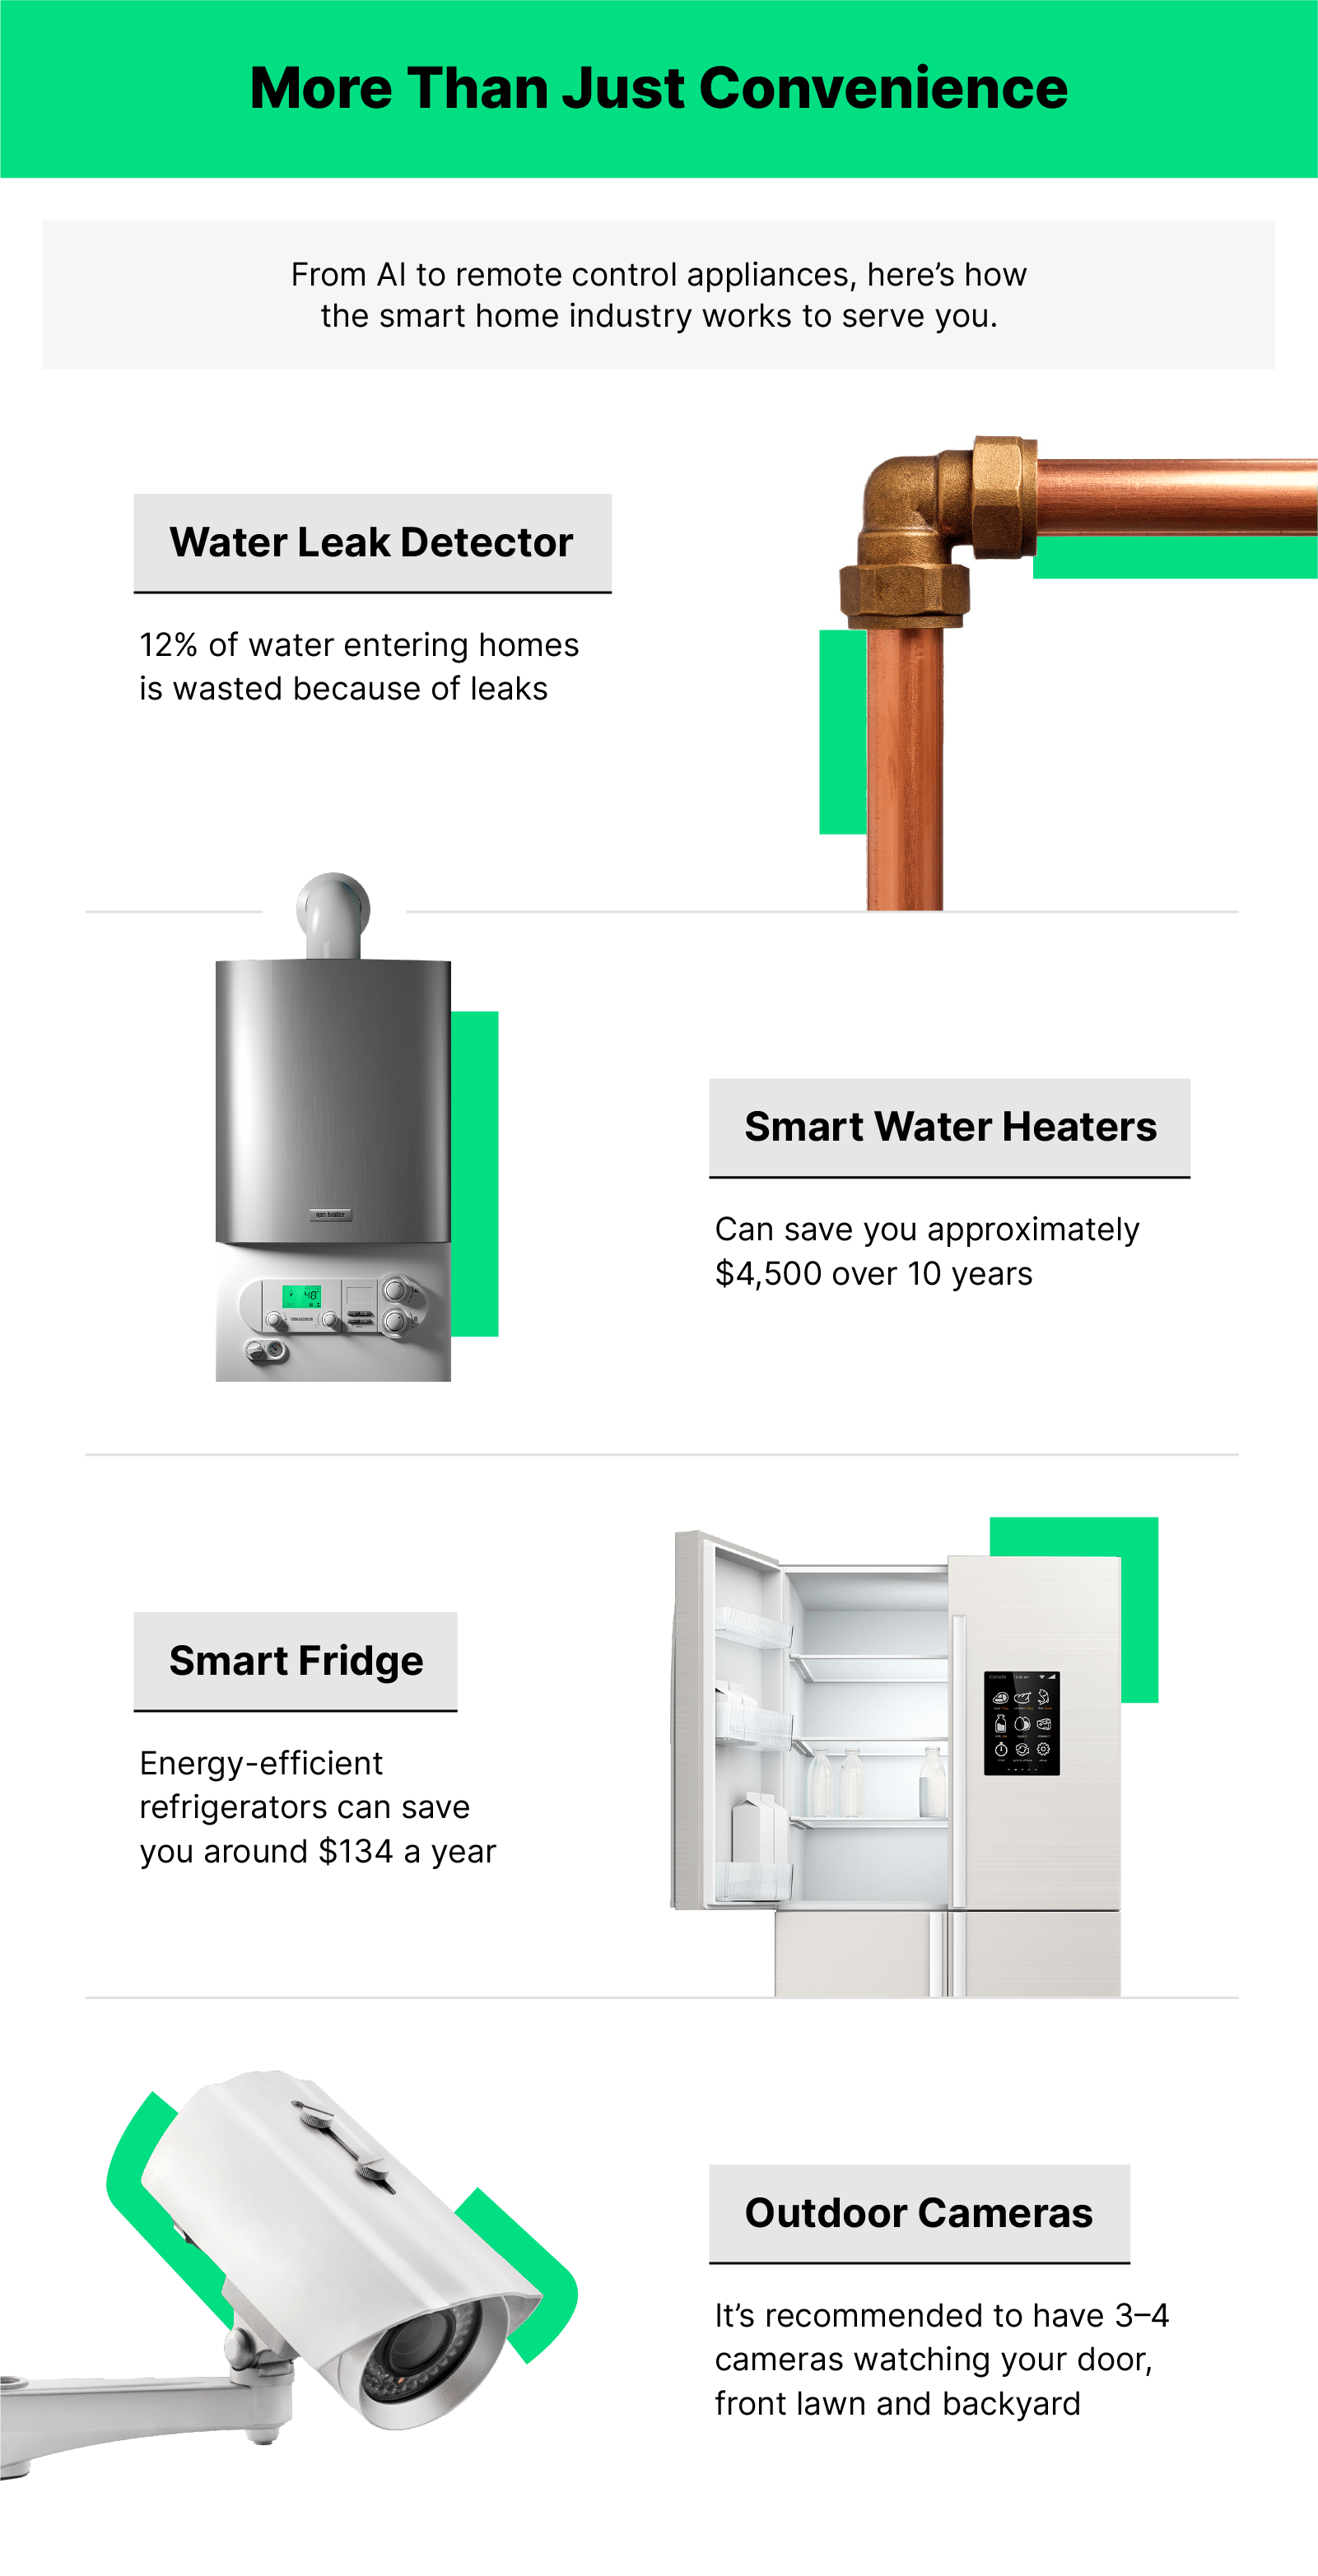 Alternating images of each described item: a water pipe, a smart water heater, a smart fridge and an outdoor camera.